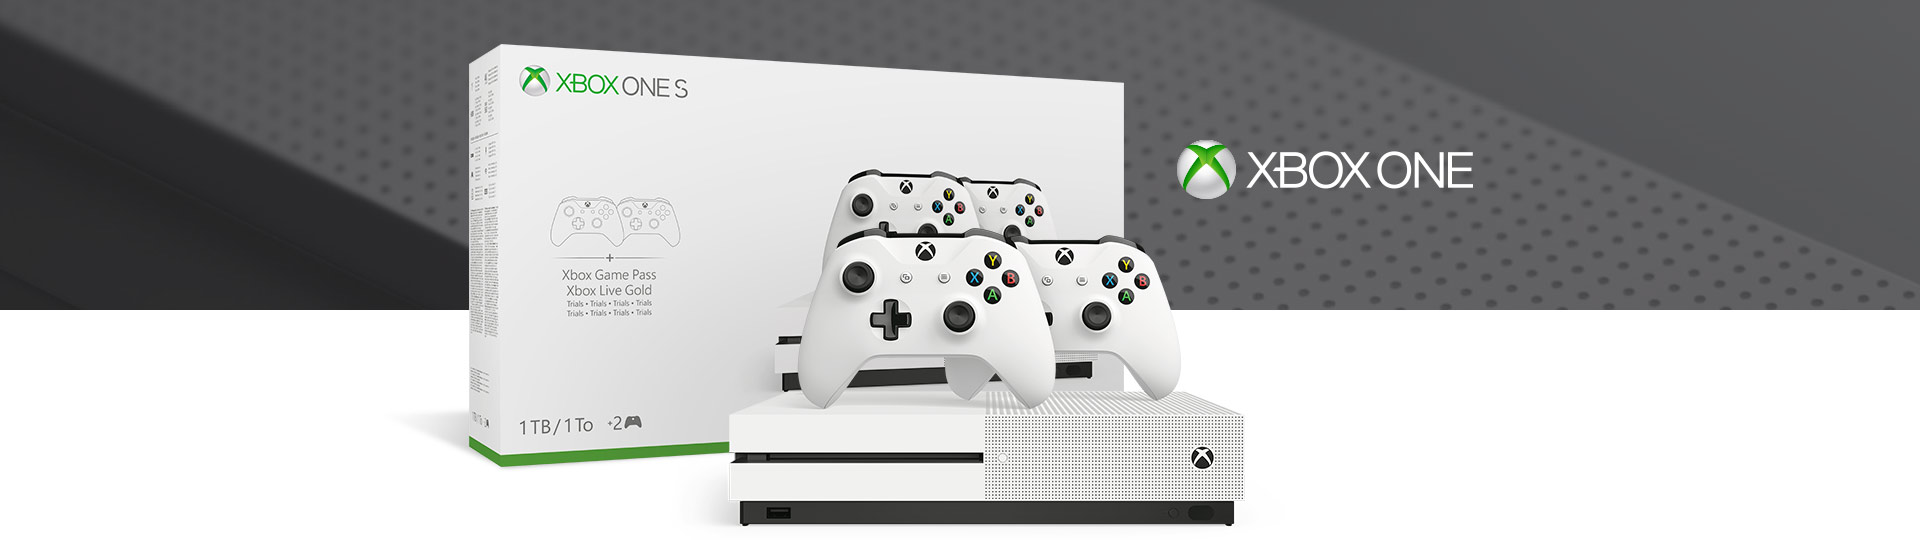 Front view of Xbox One S Two-Controller Bundle 1 teraybte with product box